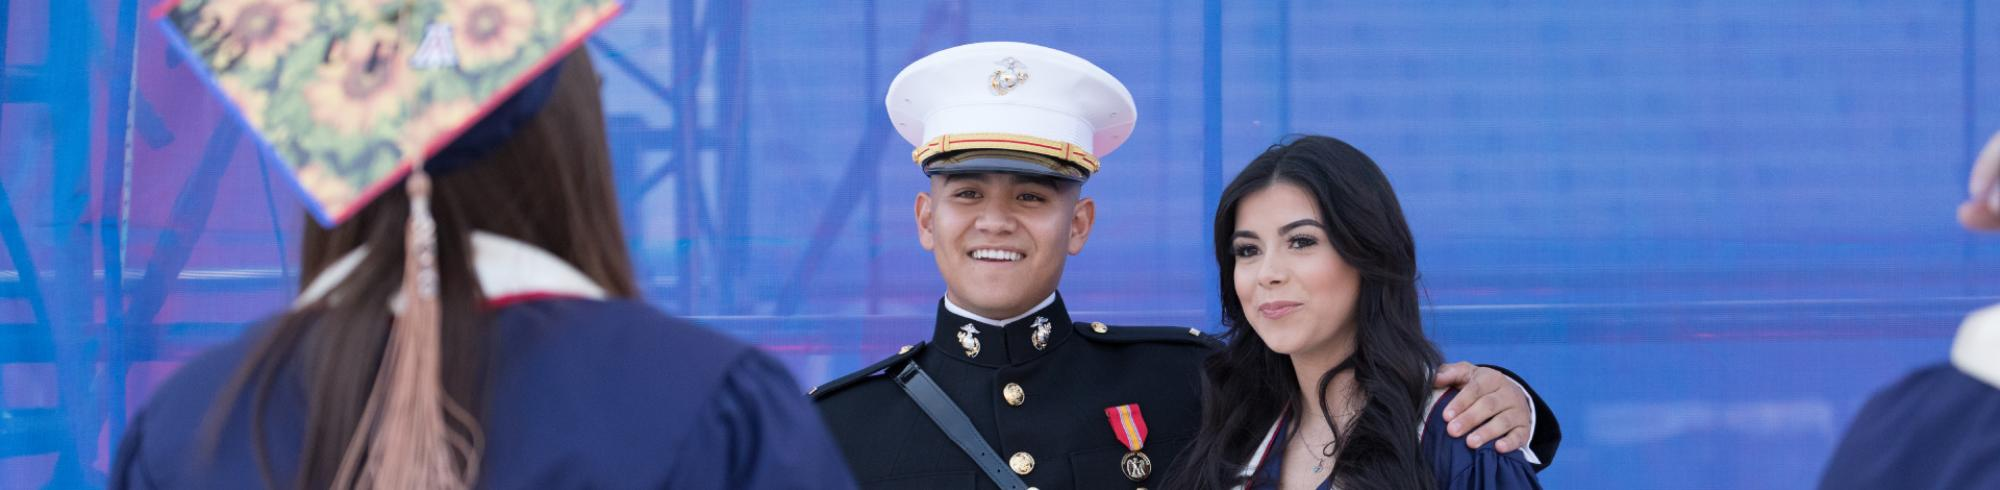 A graduating veteran poses with another graduate in regalia at Commencement as they get ready to take a photo